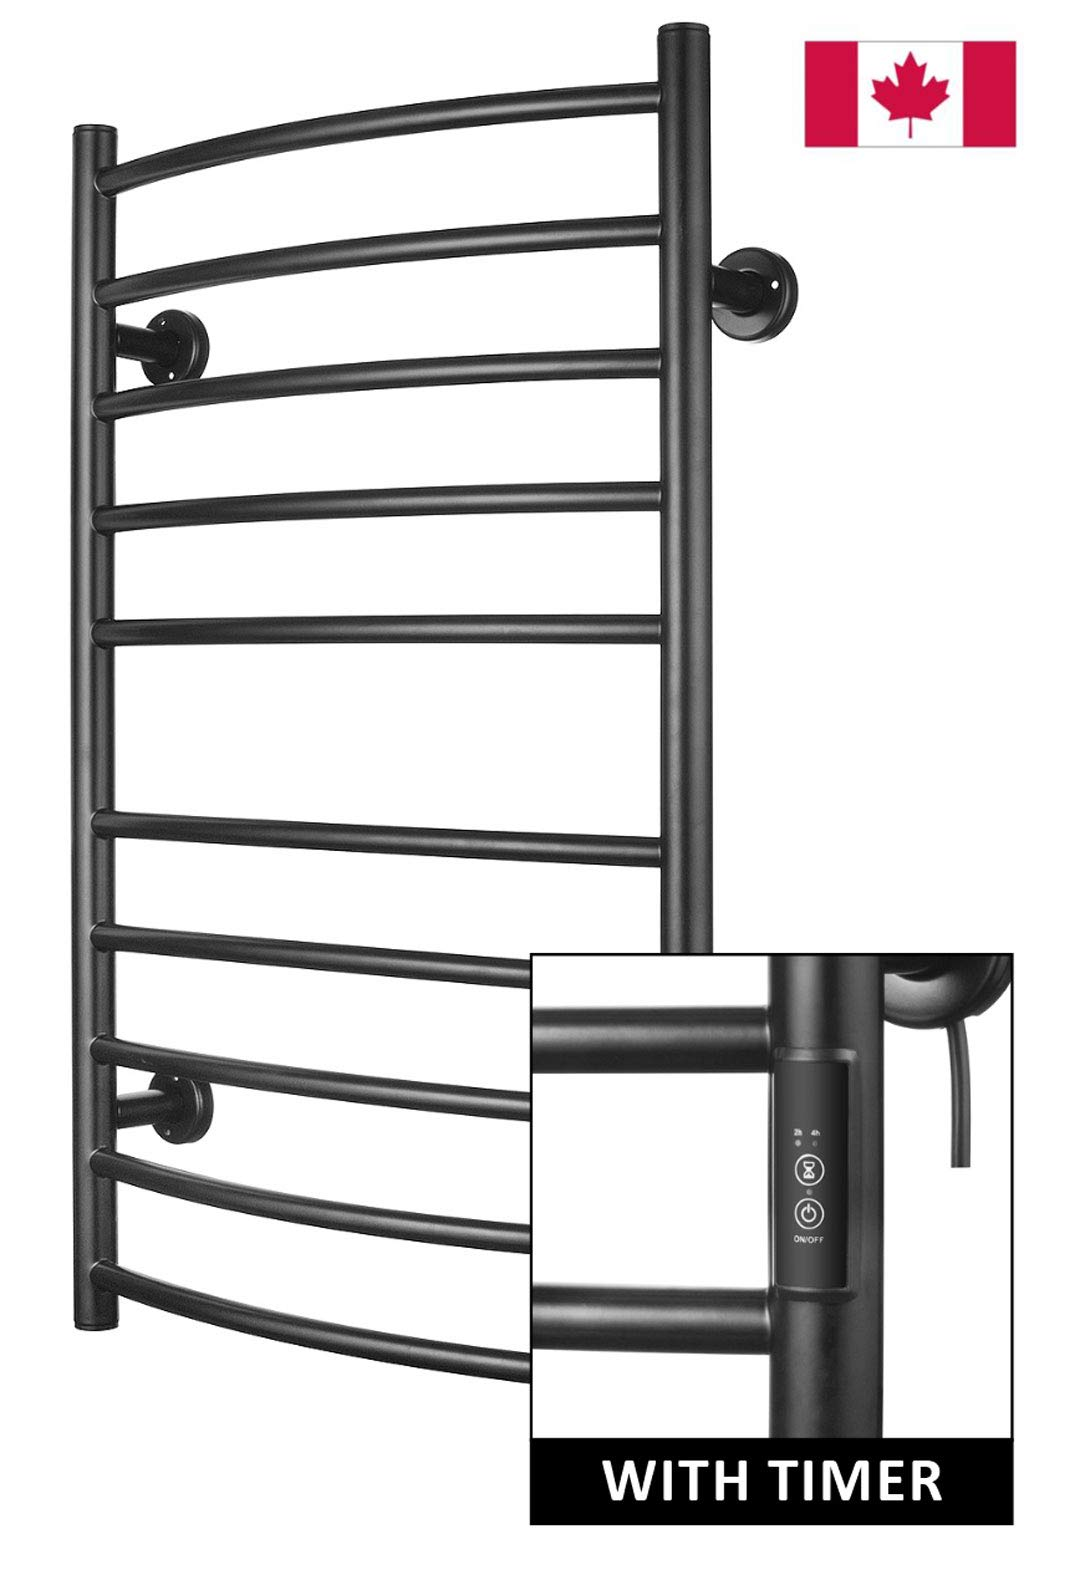 Towel Warmer | Built-in Timer with Led Indicators | 3 Timer Modes: ON/Off, 2 H, 4 H | Wall Mounted | 10 Bars | Power Coated (Carbon Steel) by Odass